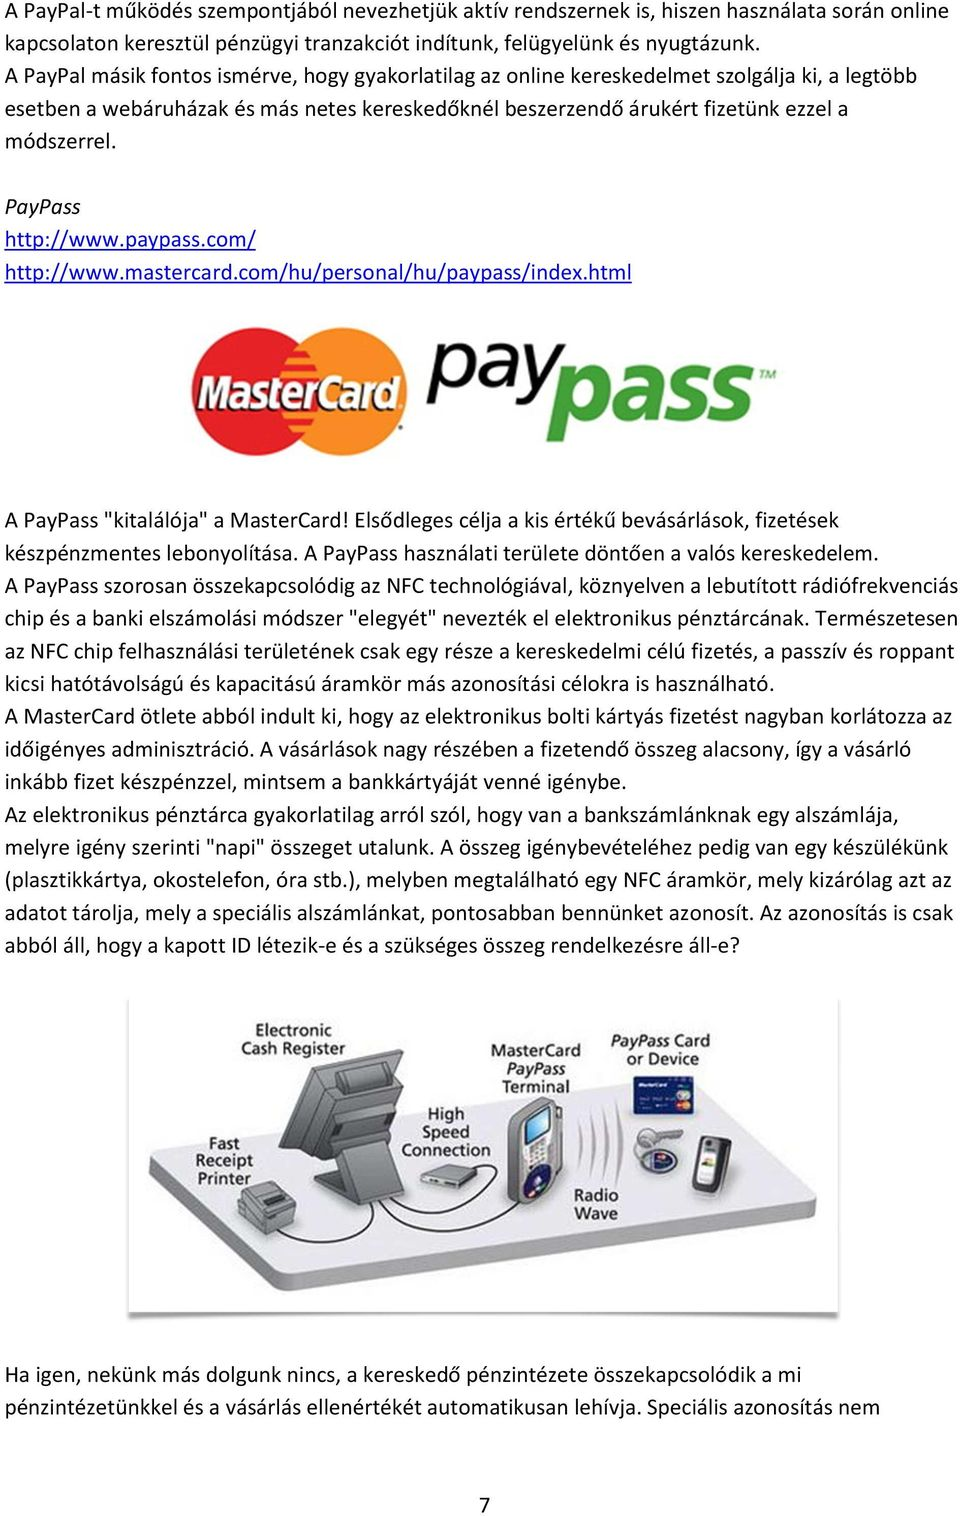 "PayPass http://www.paypass.com/ http://www.mastercard.com/hu/personal/hu/paypass/index.html A PayPass ""kitalálója"" a MasterCard!"